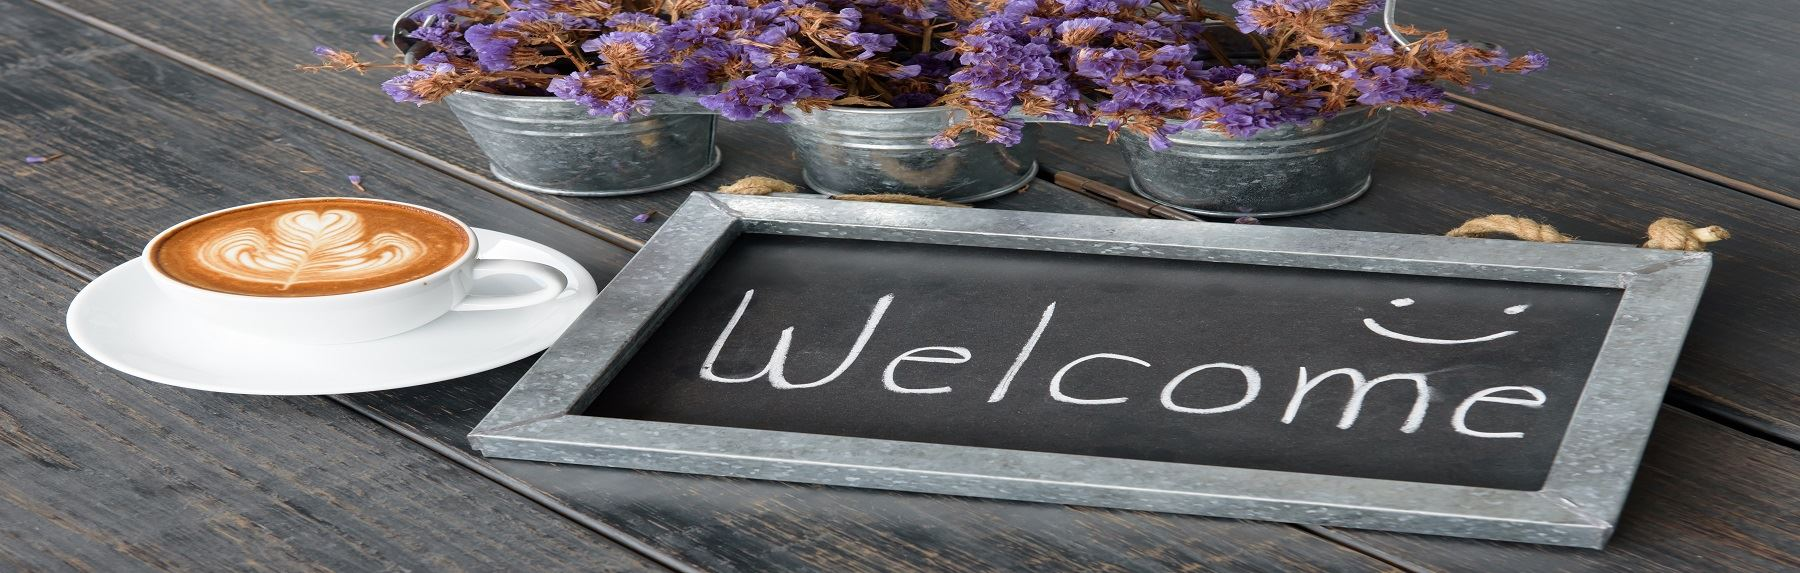 Archives Welcome sign